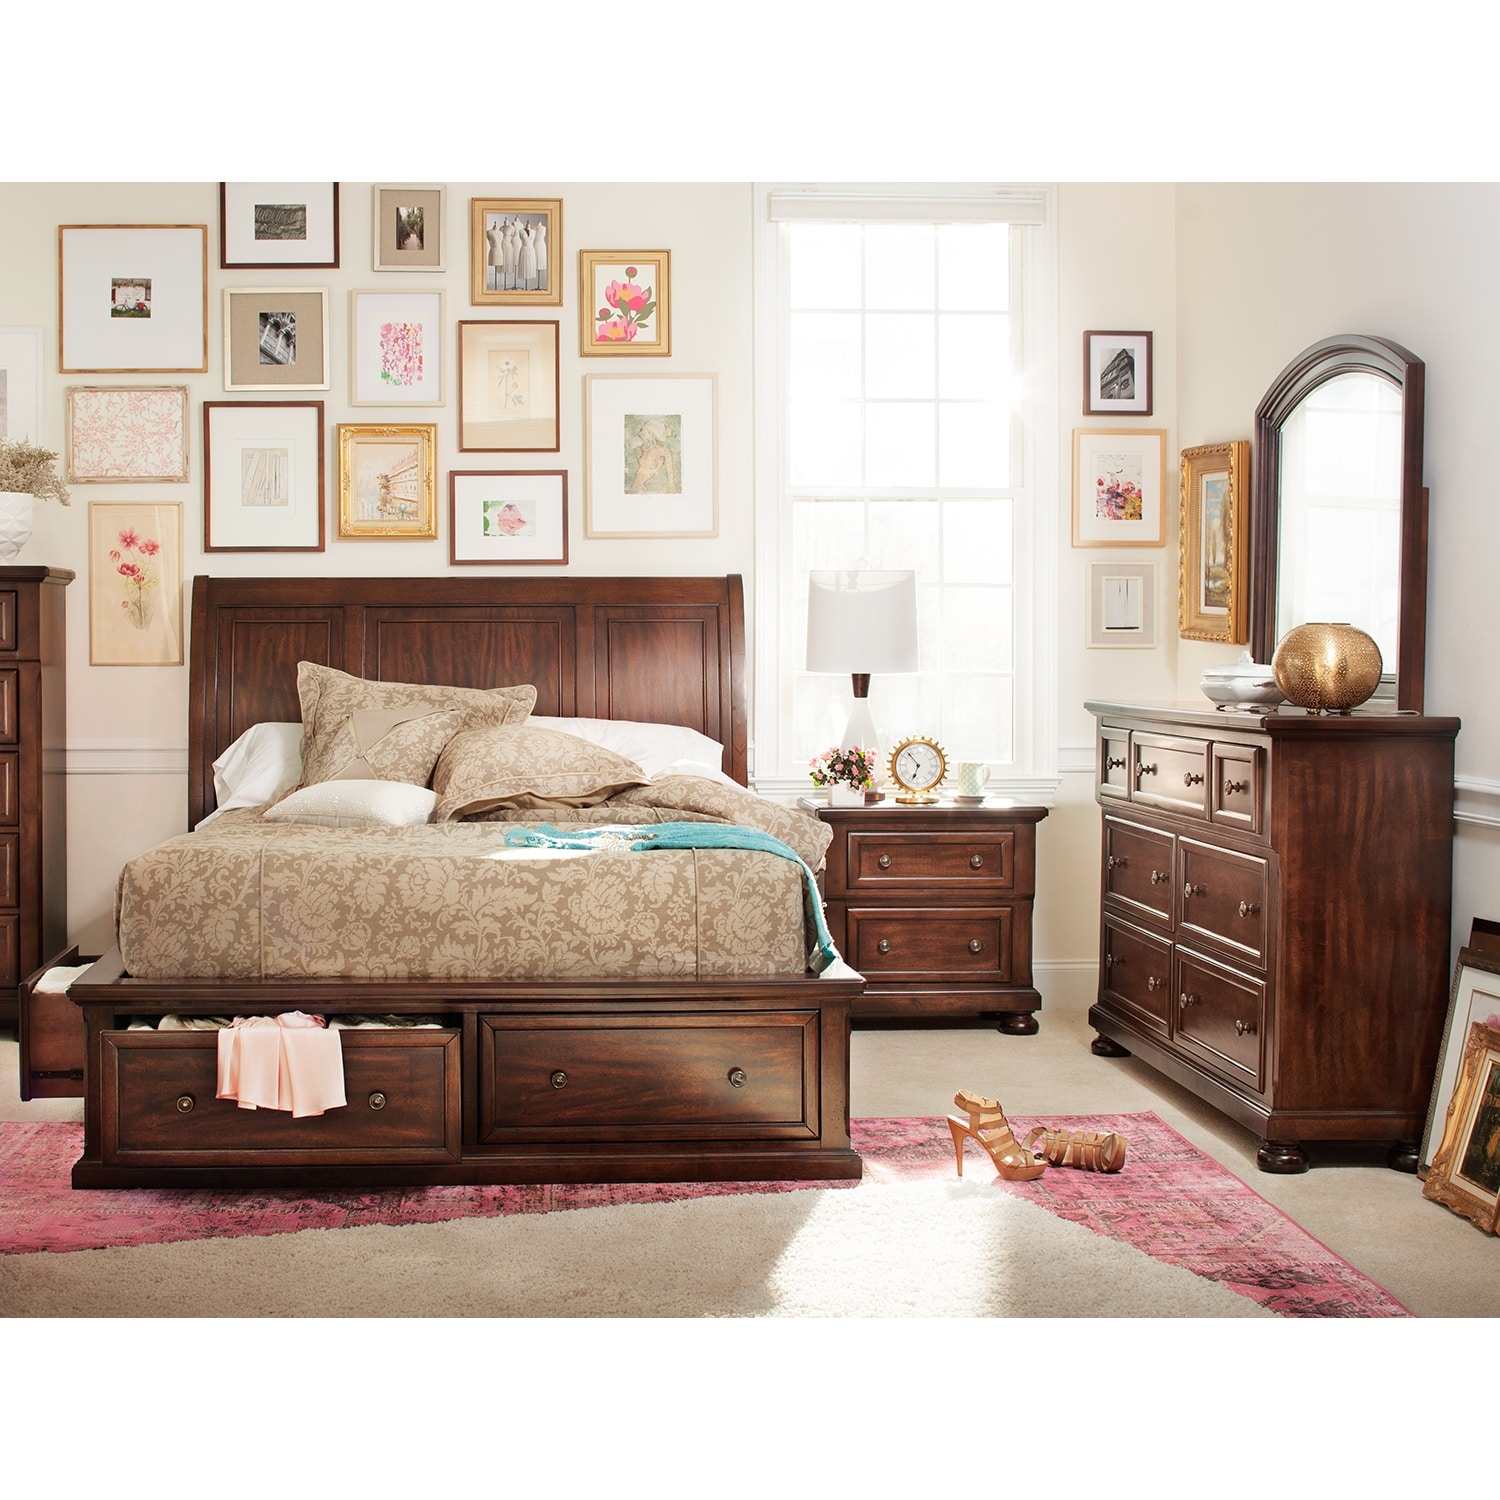 Hanover 6 Pc. Queen Storage Bedroom